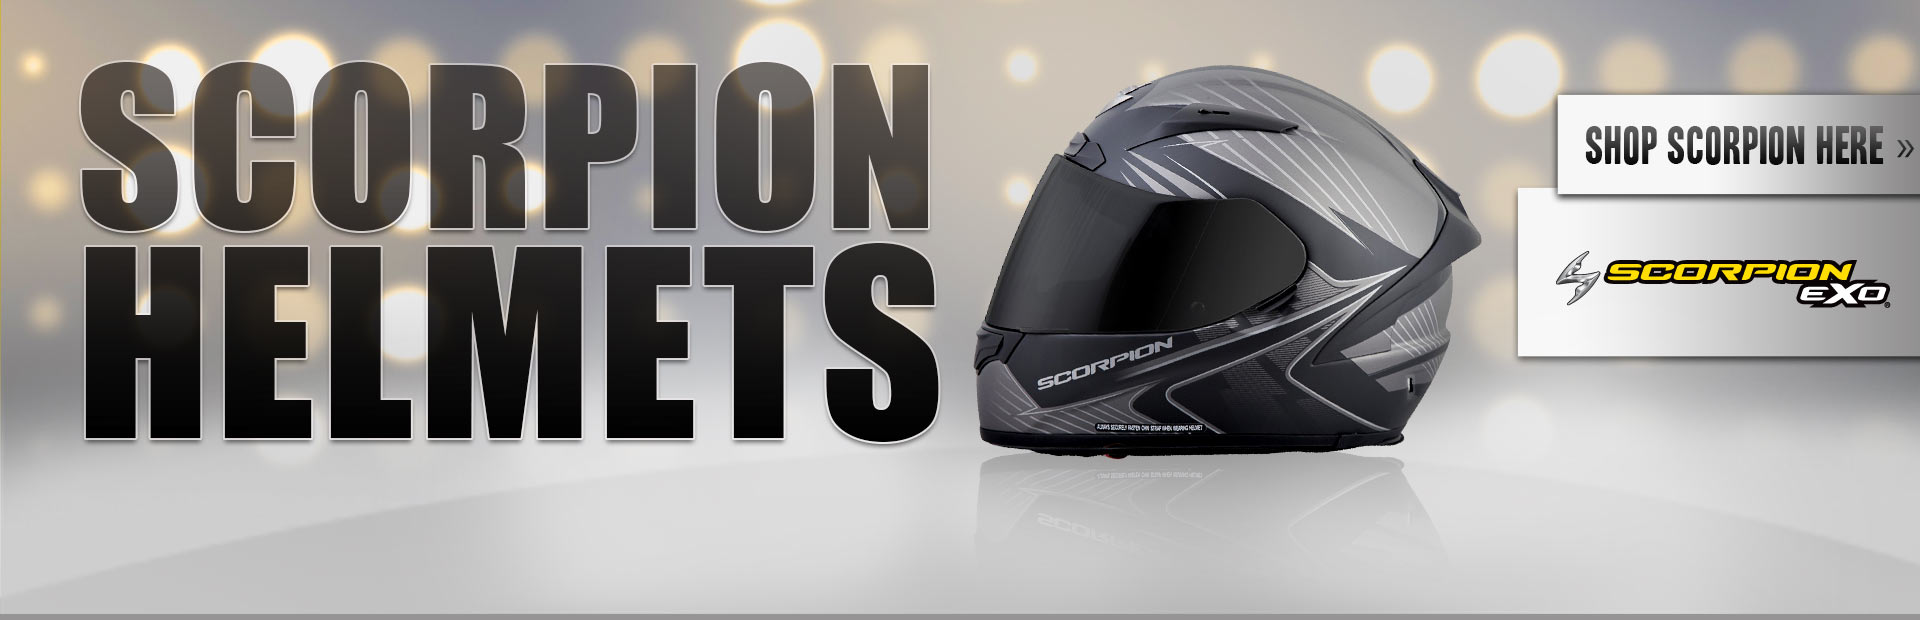 Click here to shop for Scorpion helmets.